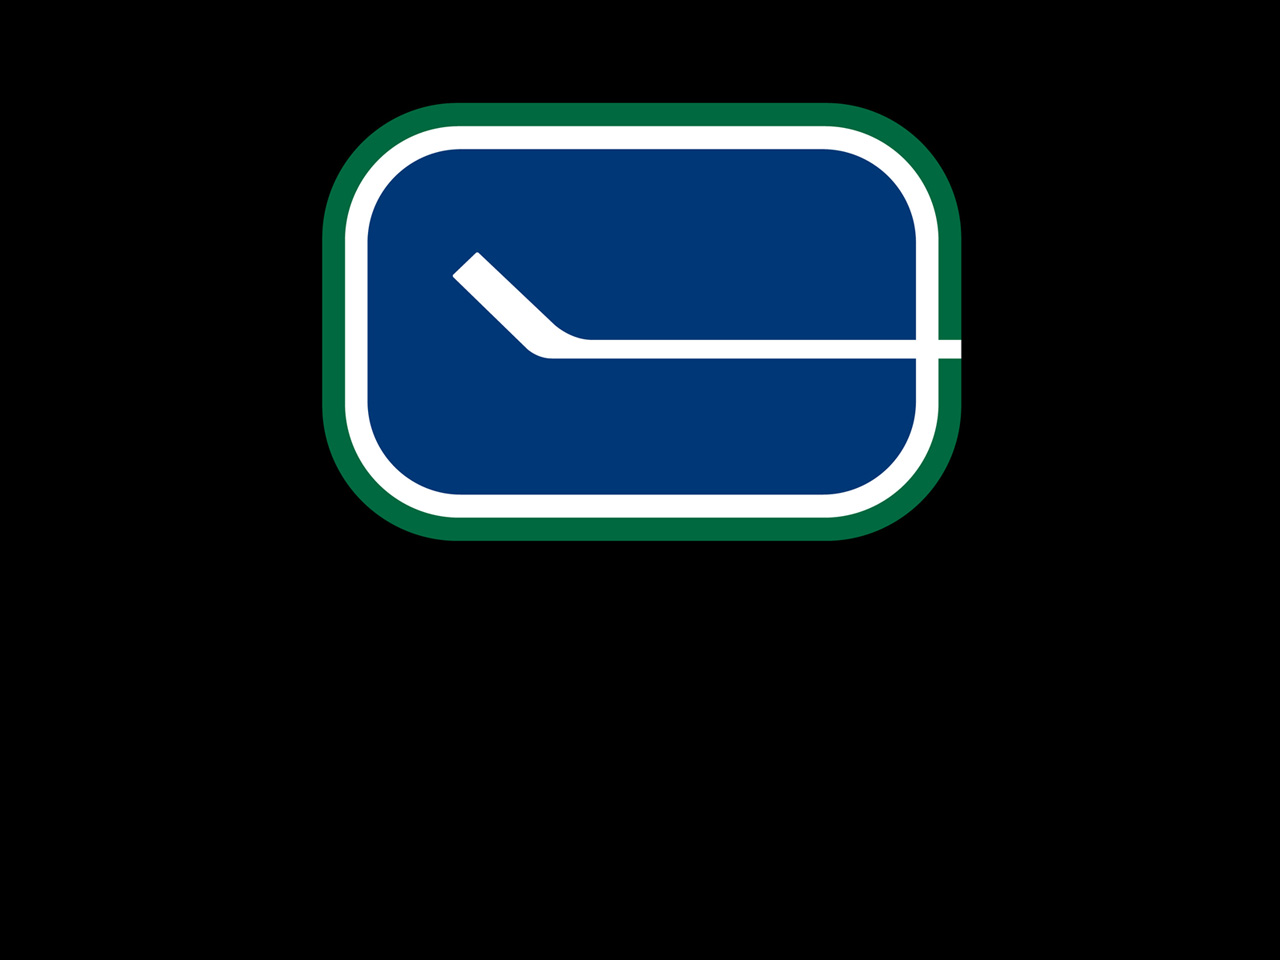 Vancouver Canucks Team Logo Wallpapers All Monitor Sizes Digital 1280x960